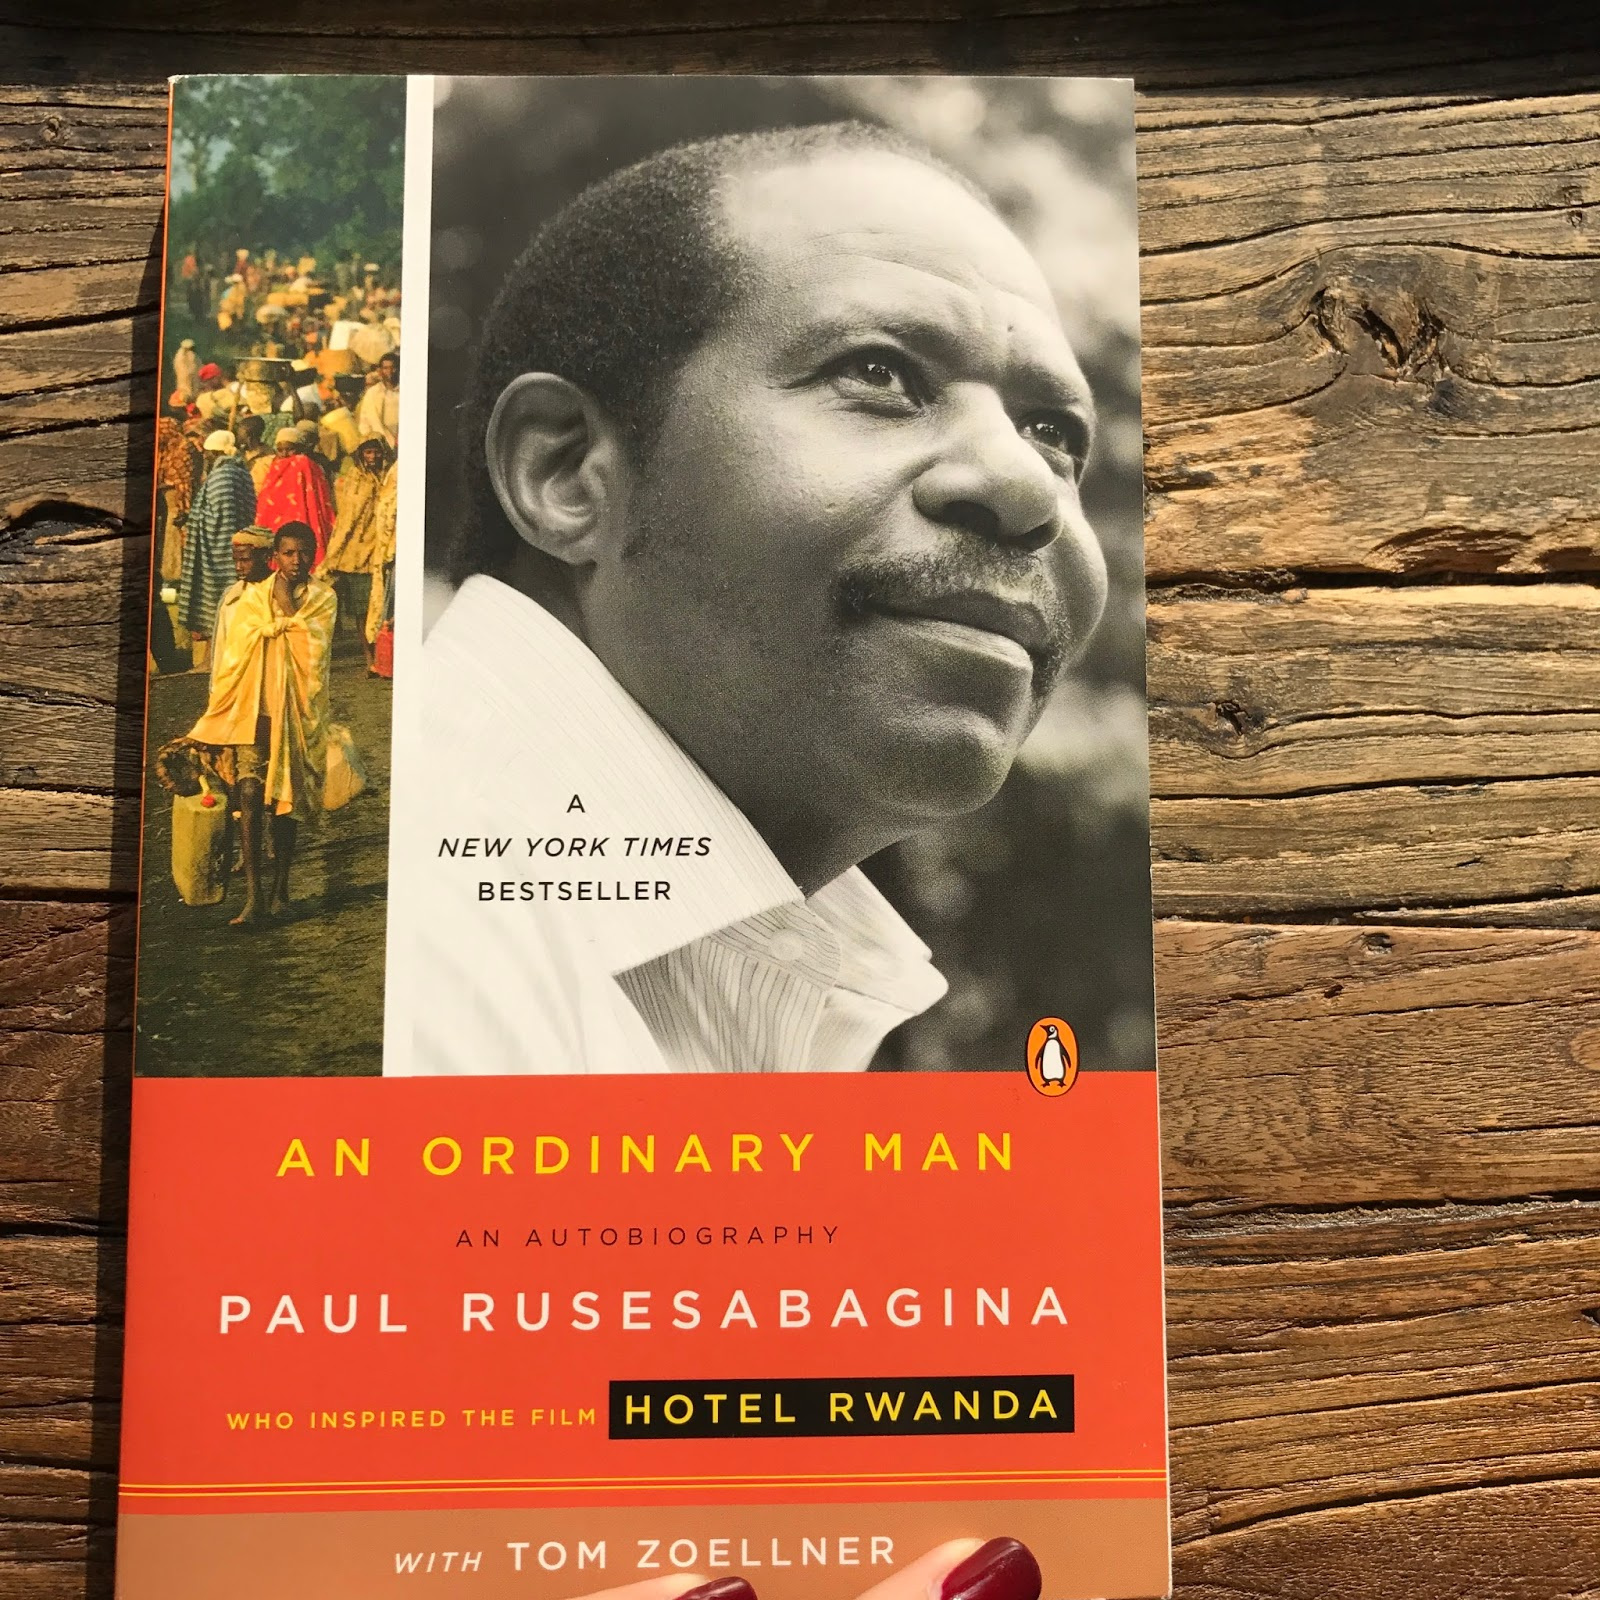 an ordinary man paul rusesabagina essay The article presents an interview with paul rusesabagina, author of an ordinary man he recalls the genocide in rwanda in 1994 he relates the role radio played in inciting the masses he describes his experience at hotel mille collines, where he sheltered thousands of people to save them from the.